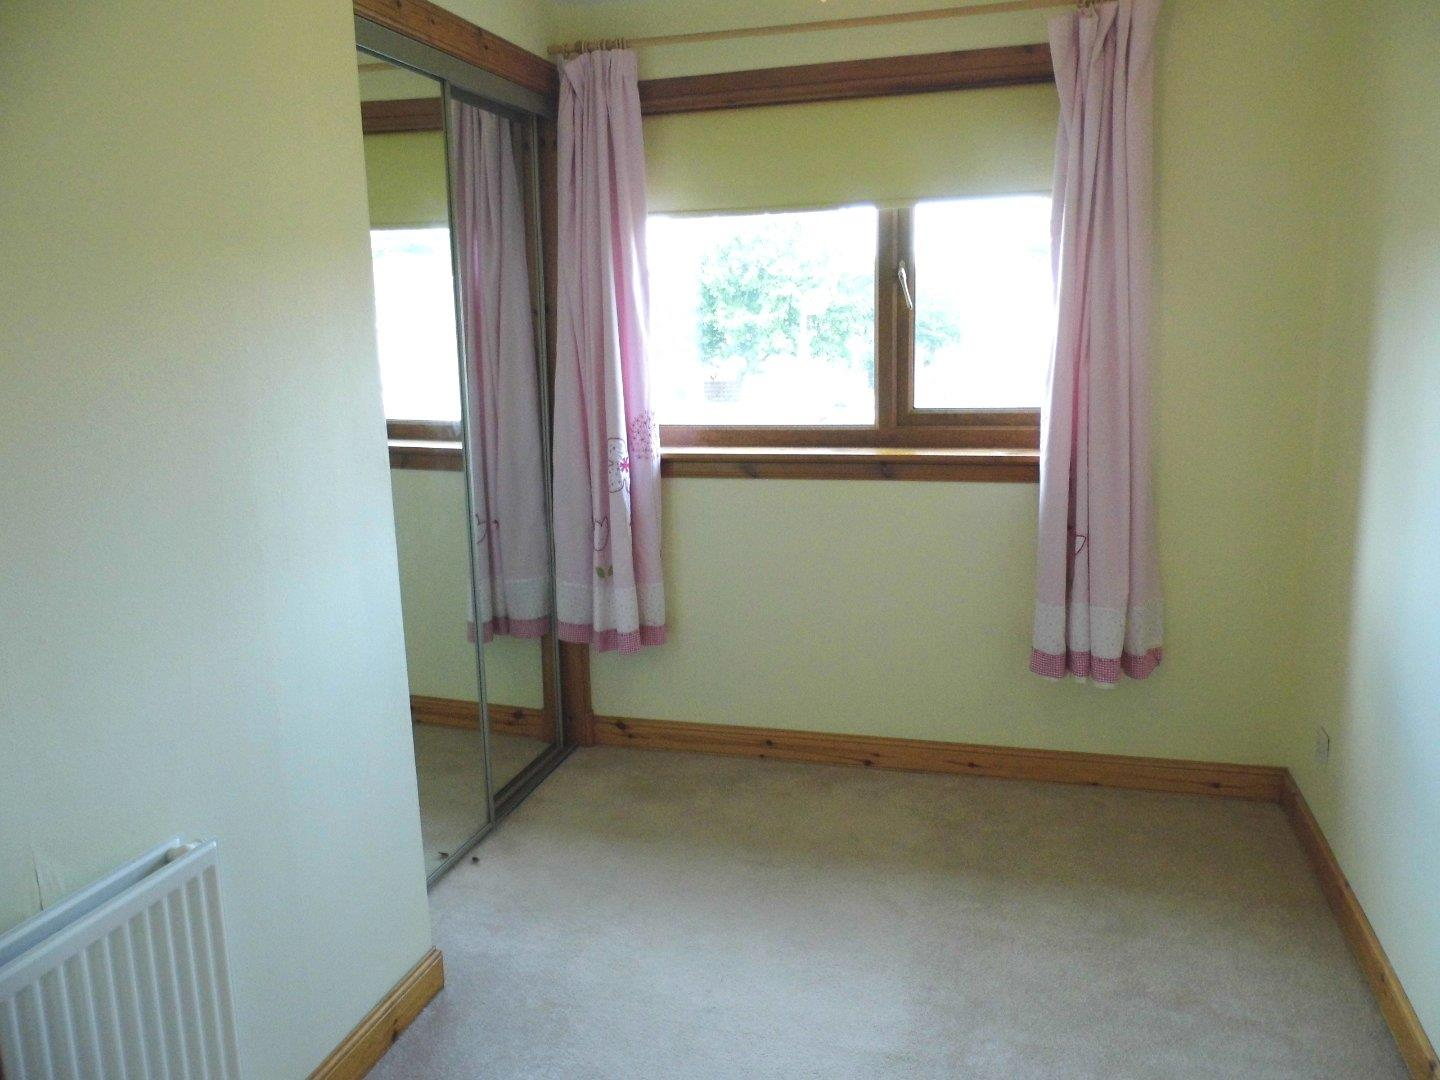 3 Bedroom House Detached For Sale In Perth Next Home